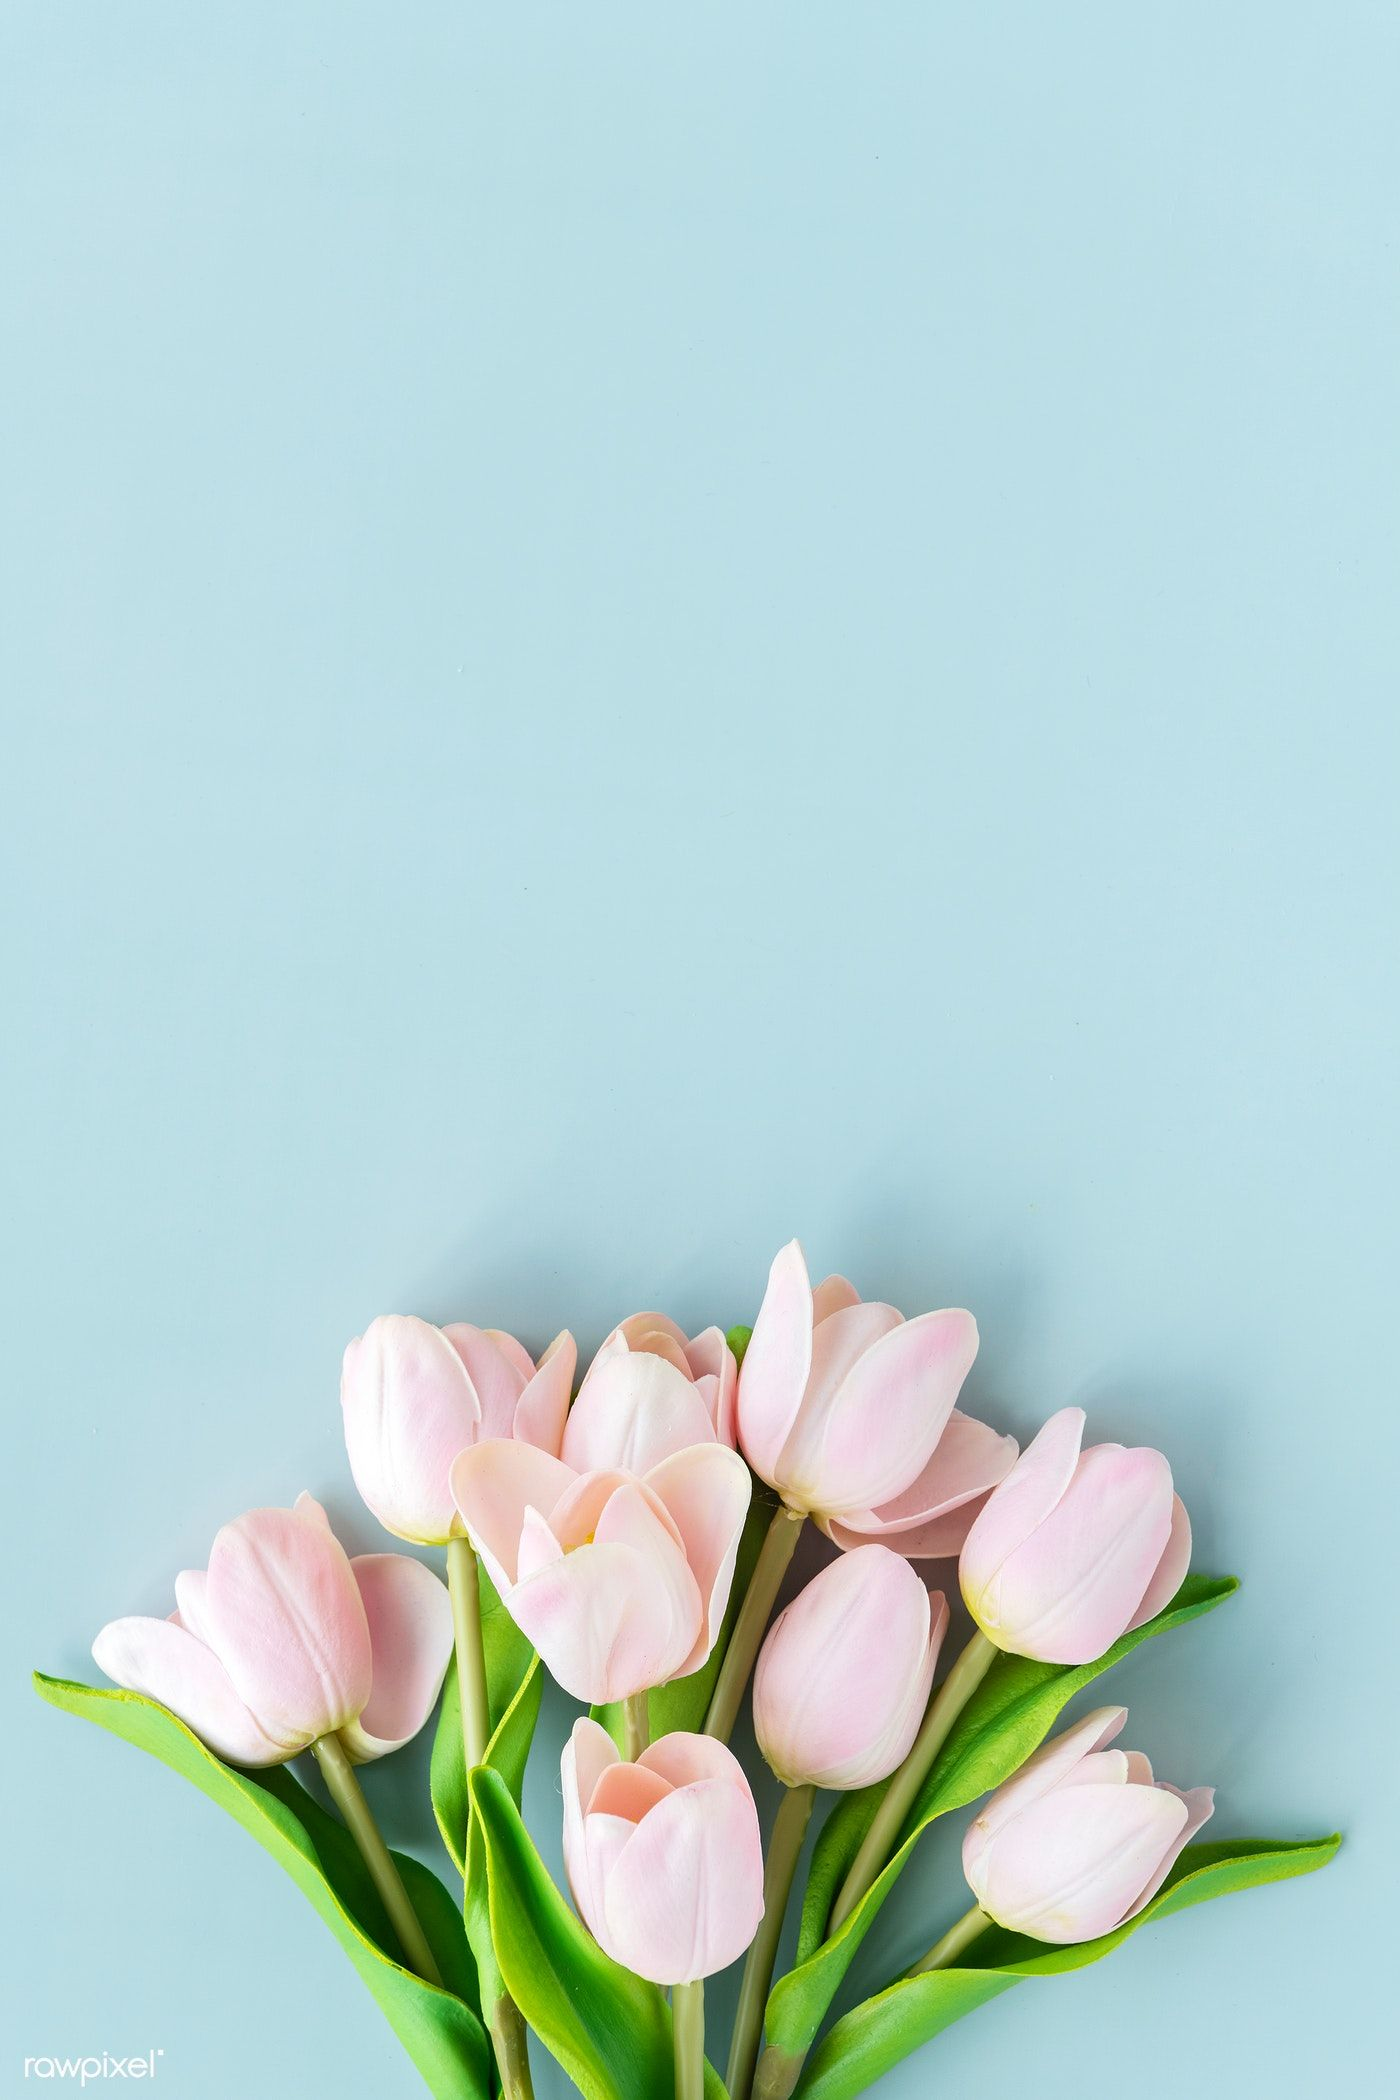 Download Premium Image Of Pink Tulip On Blank Blue Background